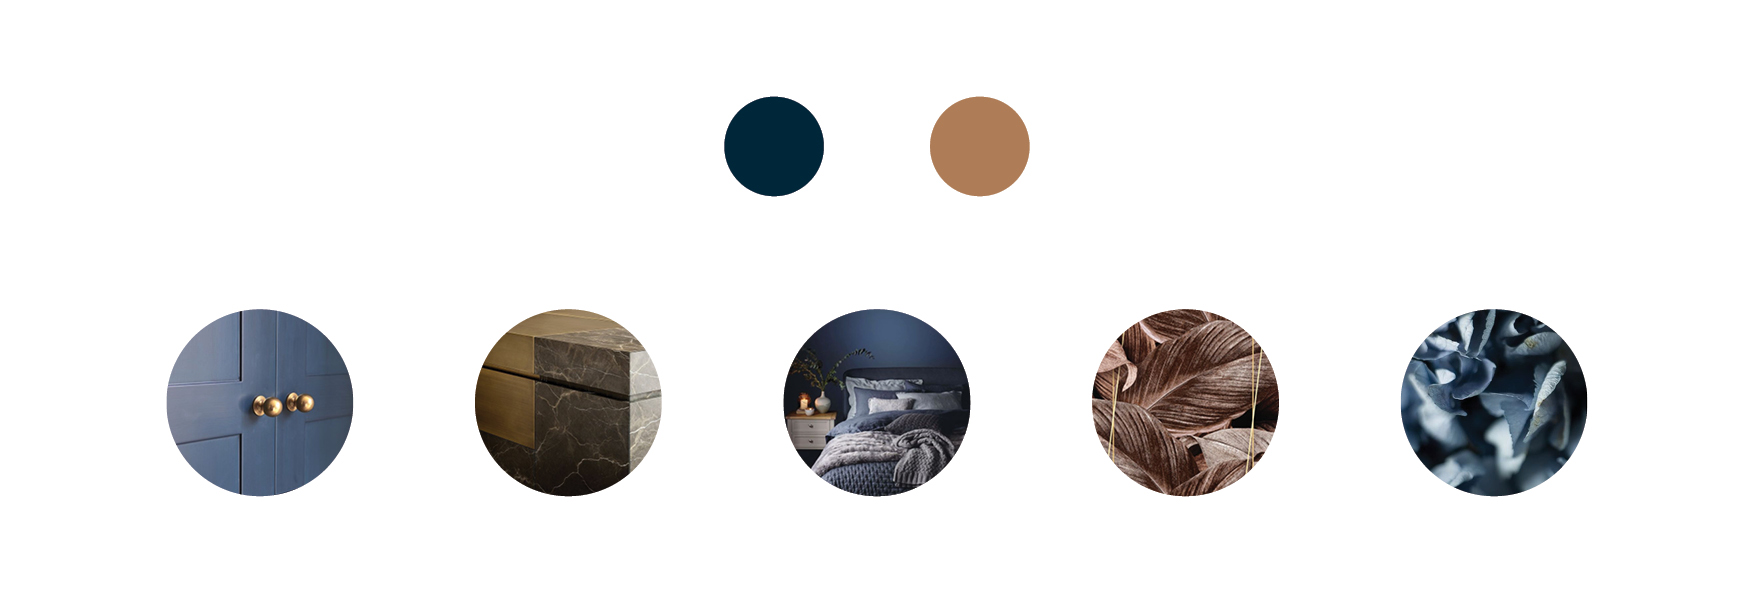 mood board with bronze and blue accents and aesthetic